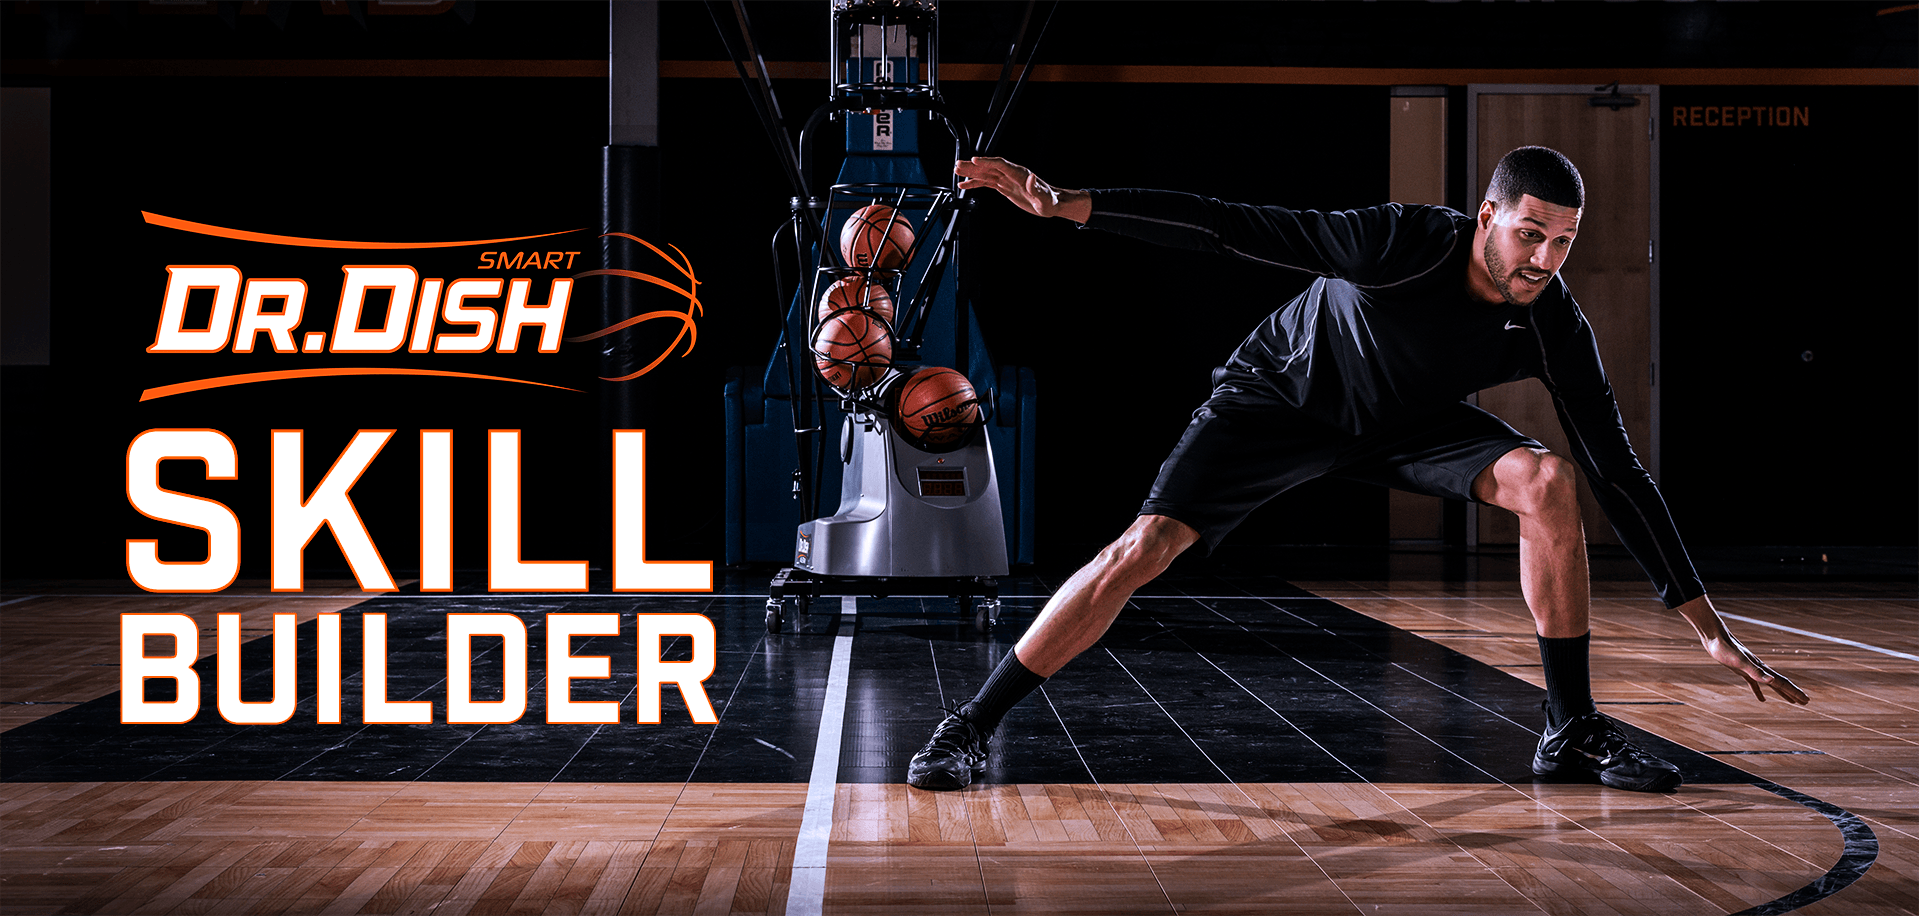 Dr. Dish Skill Builder: 5 Star Shooting Workout